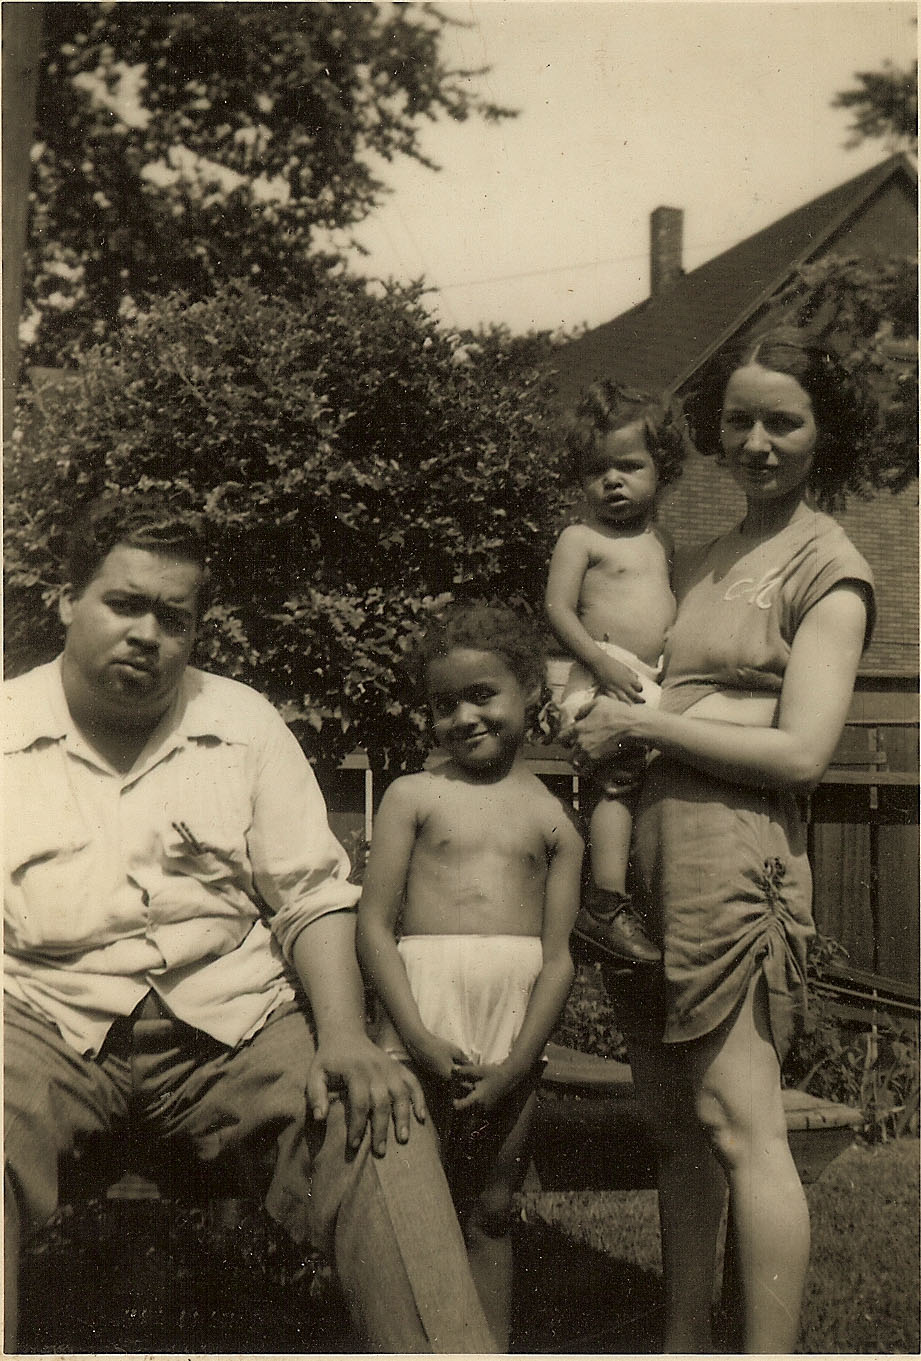 The Elkins Family in 1949. Mershell and Fannie Graham's backyard.